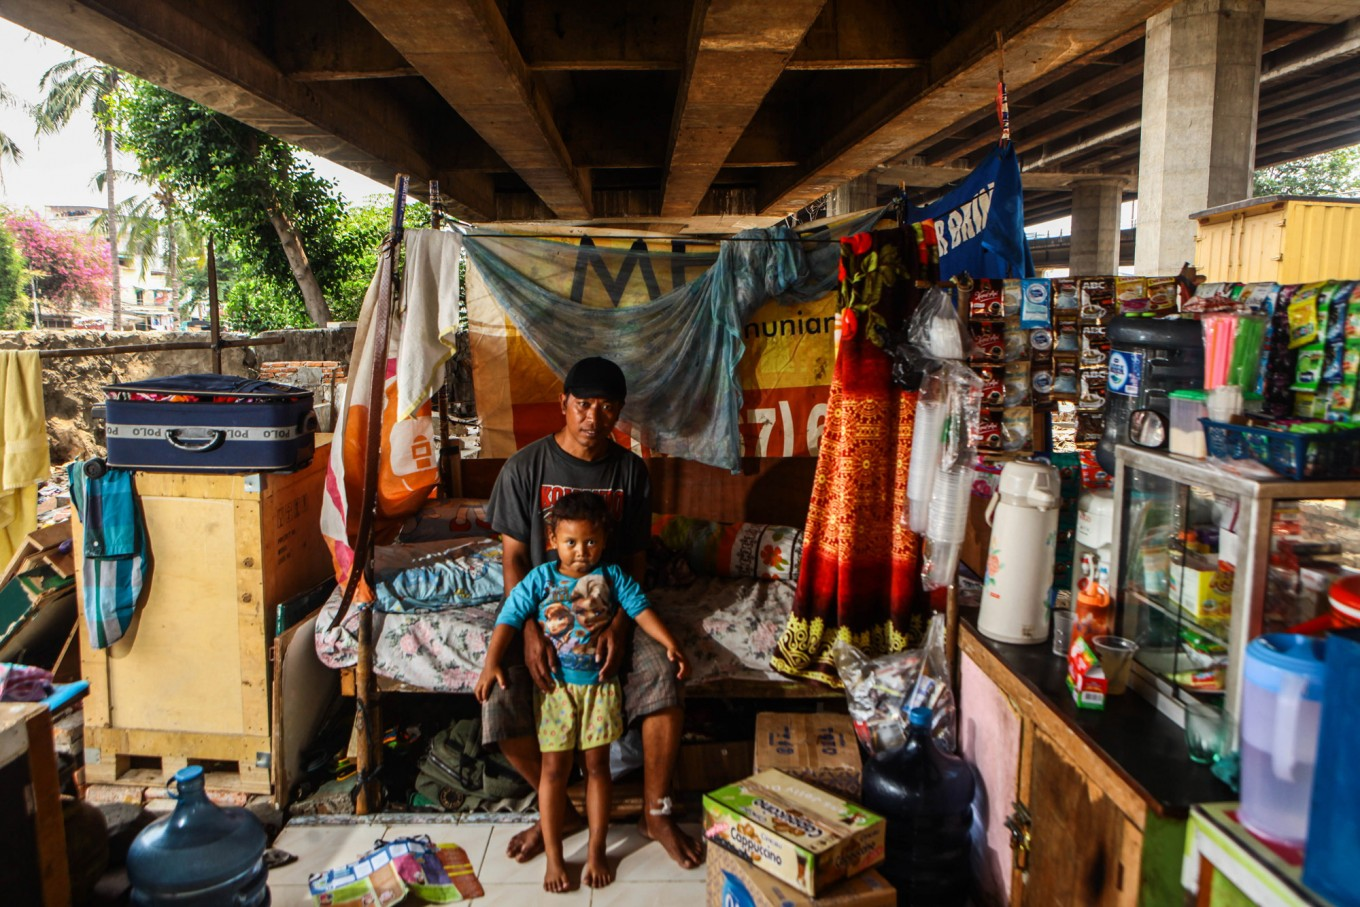 Basri, 35, lives with his daughter Hafiza, 3, and wife Sumiyati, 30, in their shack in Pejagalan, Jakarta in this photo taken August 2016. He used to be a music operator on one of the cafes in Kalijodo but he now earns his living by selling snack and coffee. Throughout his life, he has been evicted three times. JP/Seto Wardhana